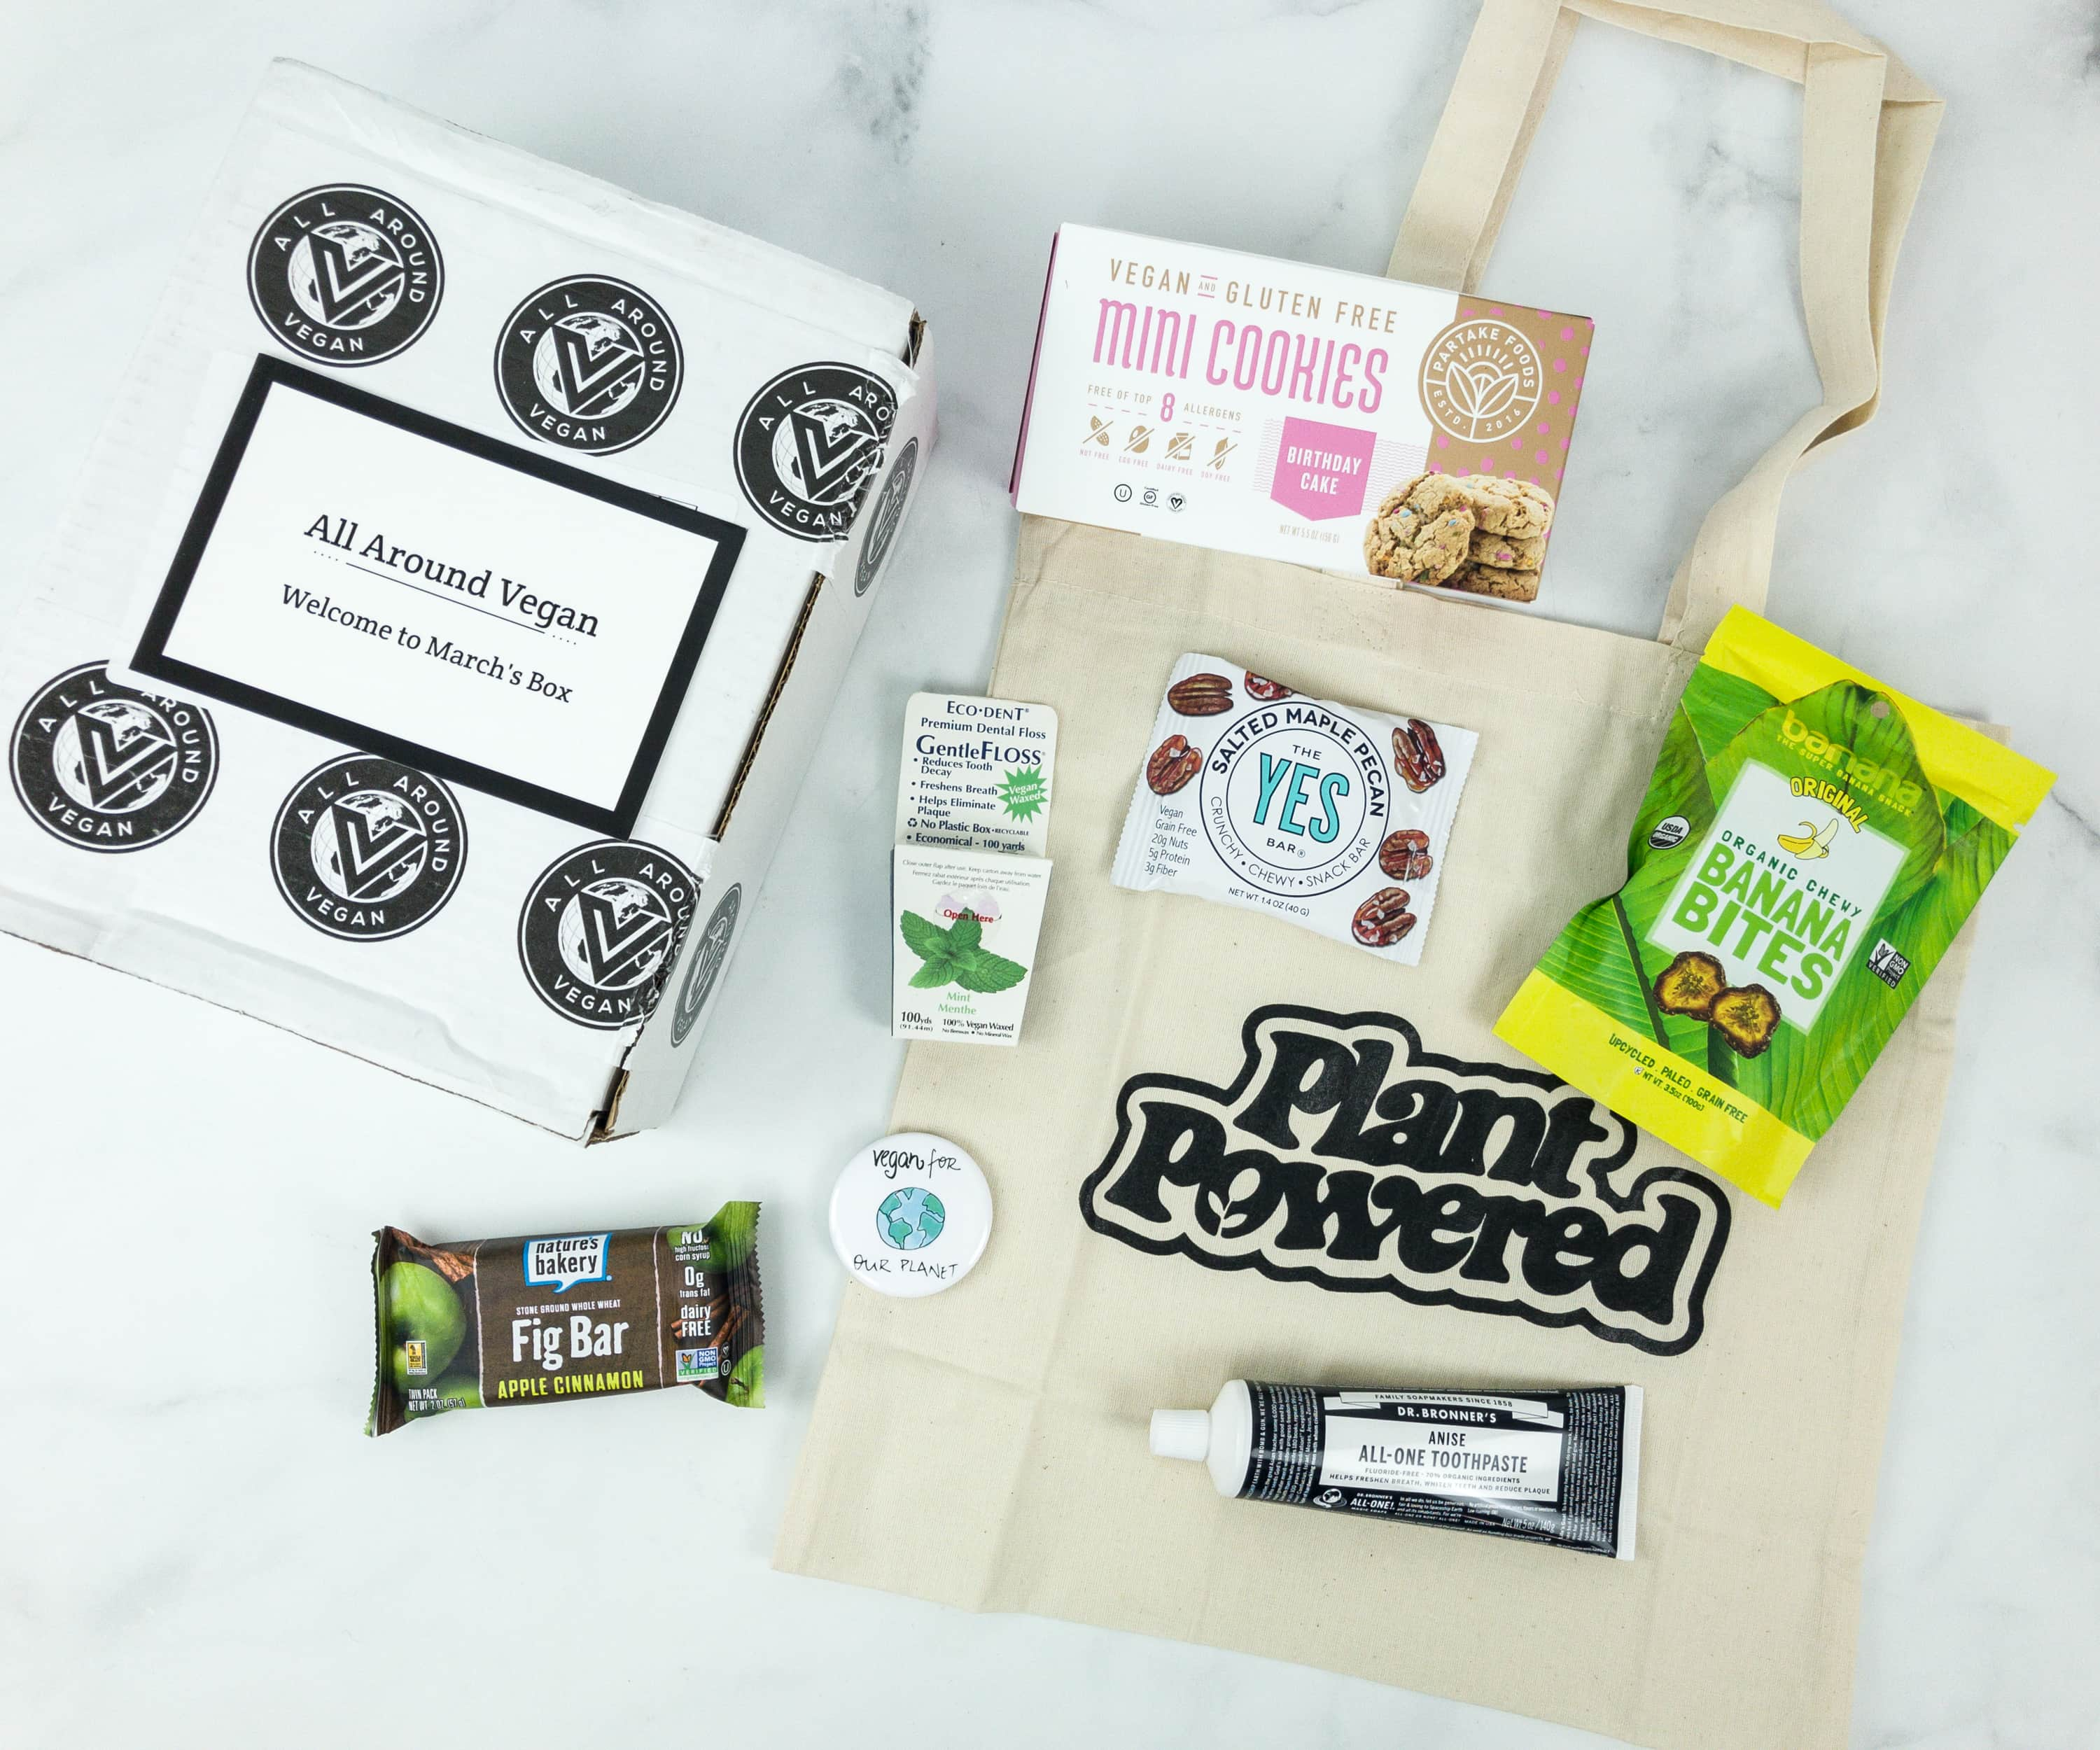 All Around Vegan Box March 2019 Subscription Box Review + Coupon